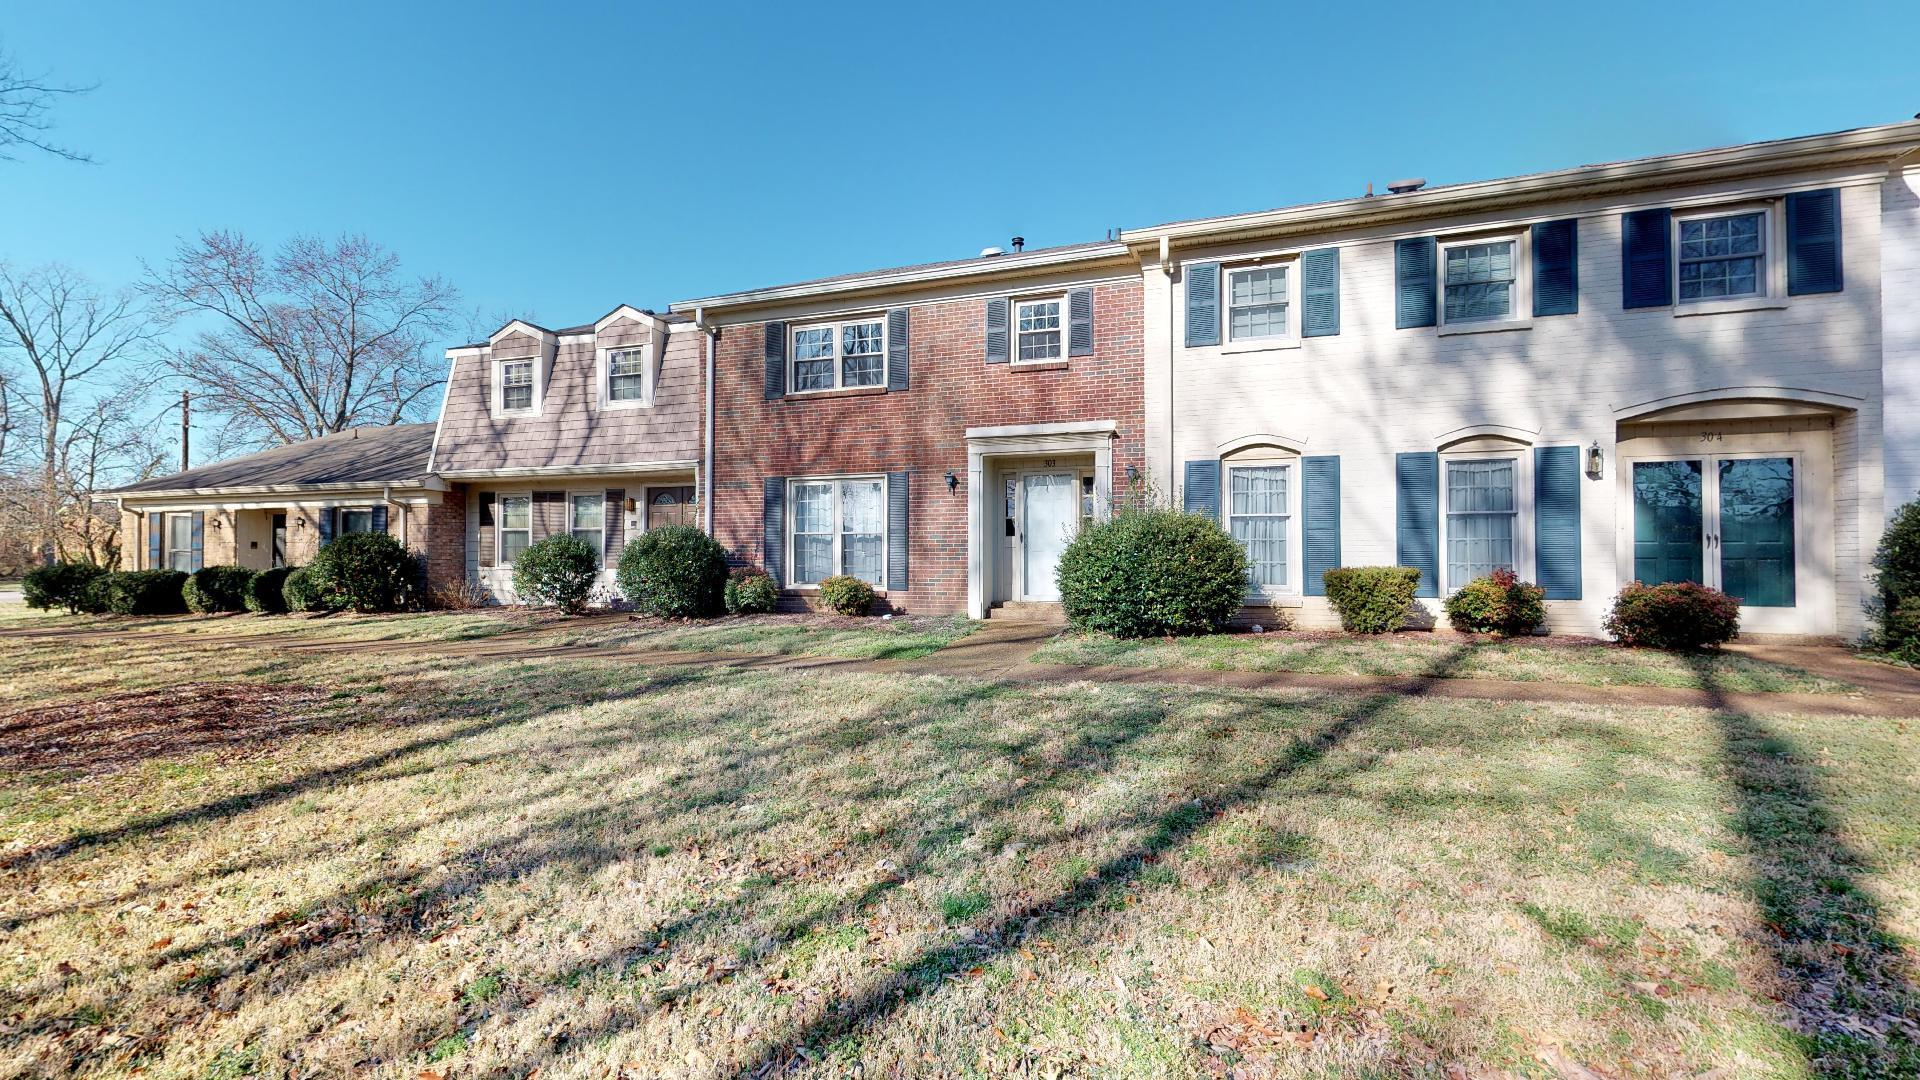 8300 Sawyer Brown Rd Apt H303, Bellevue in Davidson County County, TN 37221 Home for Sale